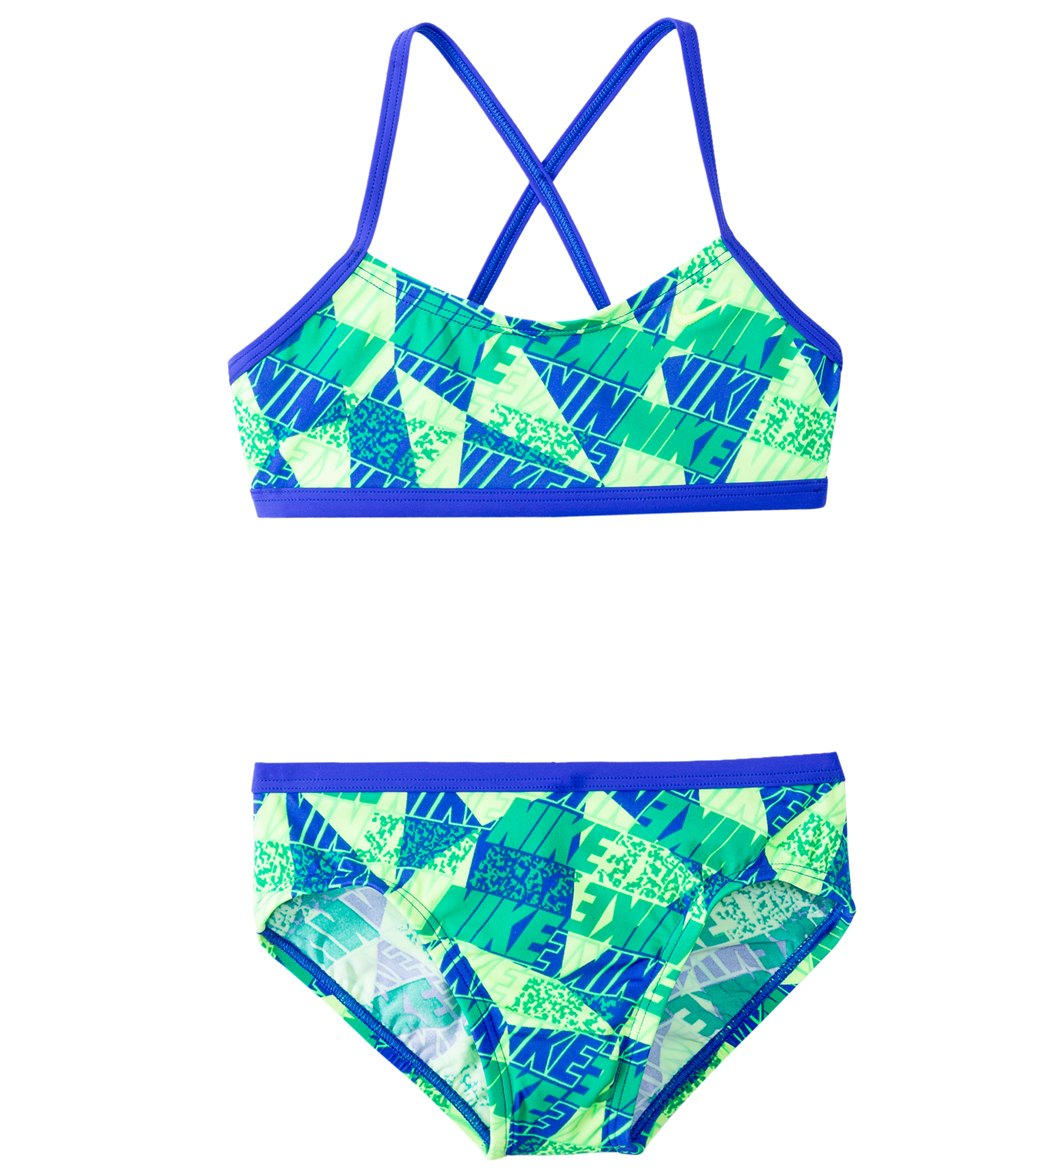 8d01b9edf8 Nike Swimwear Girls' Graphic Crossback Bikini Set (7-14) at SwimOutlet.com